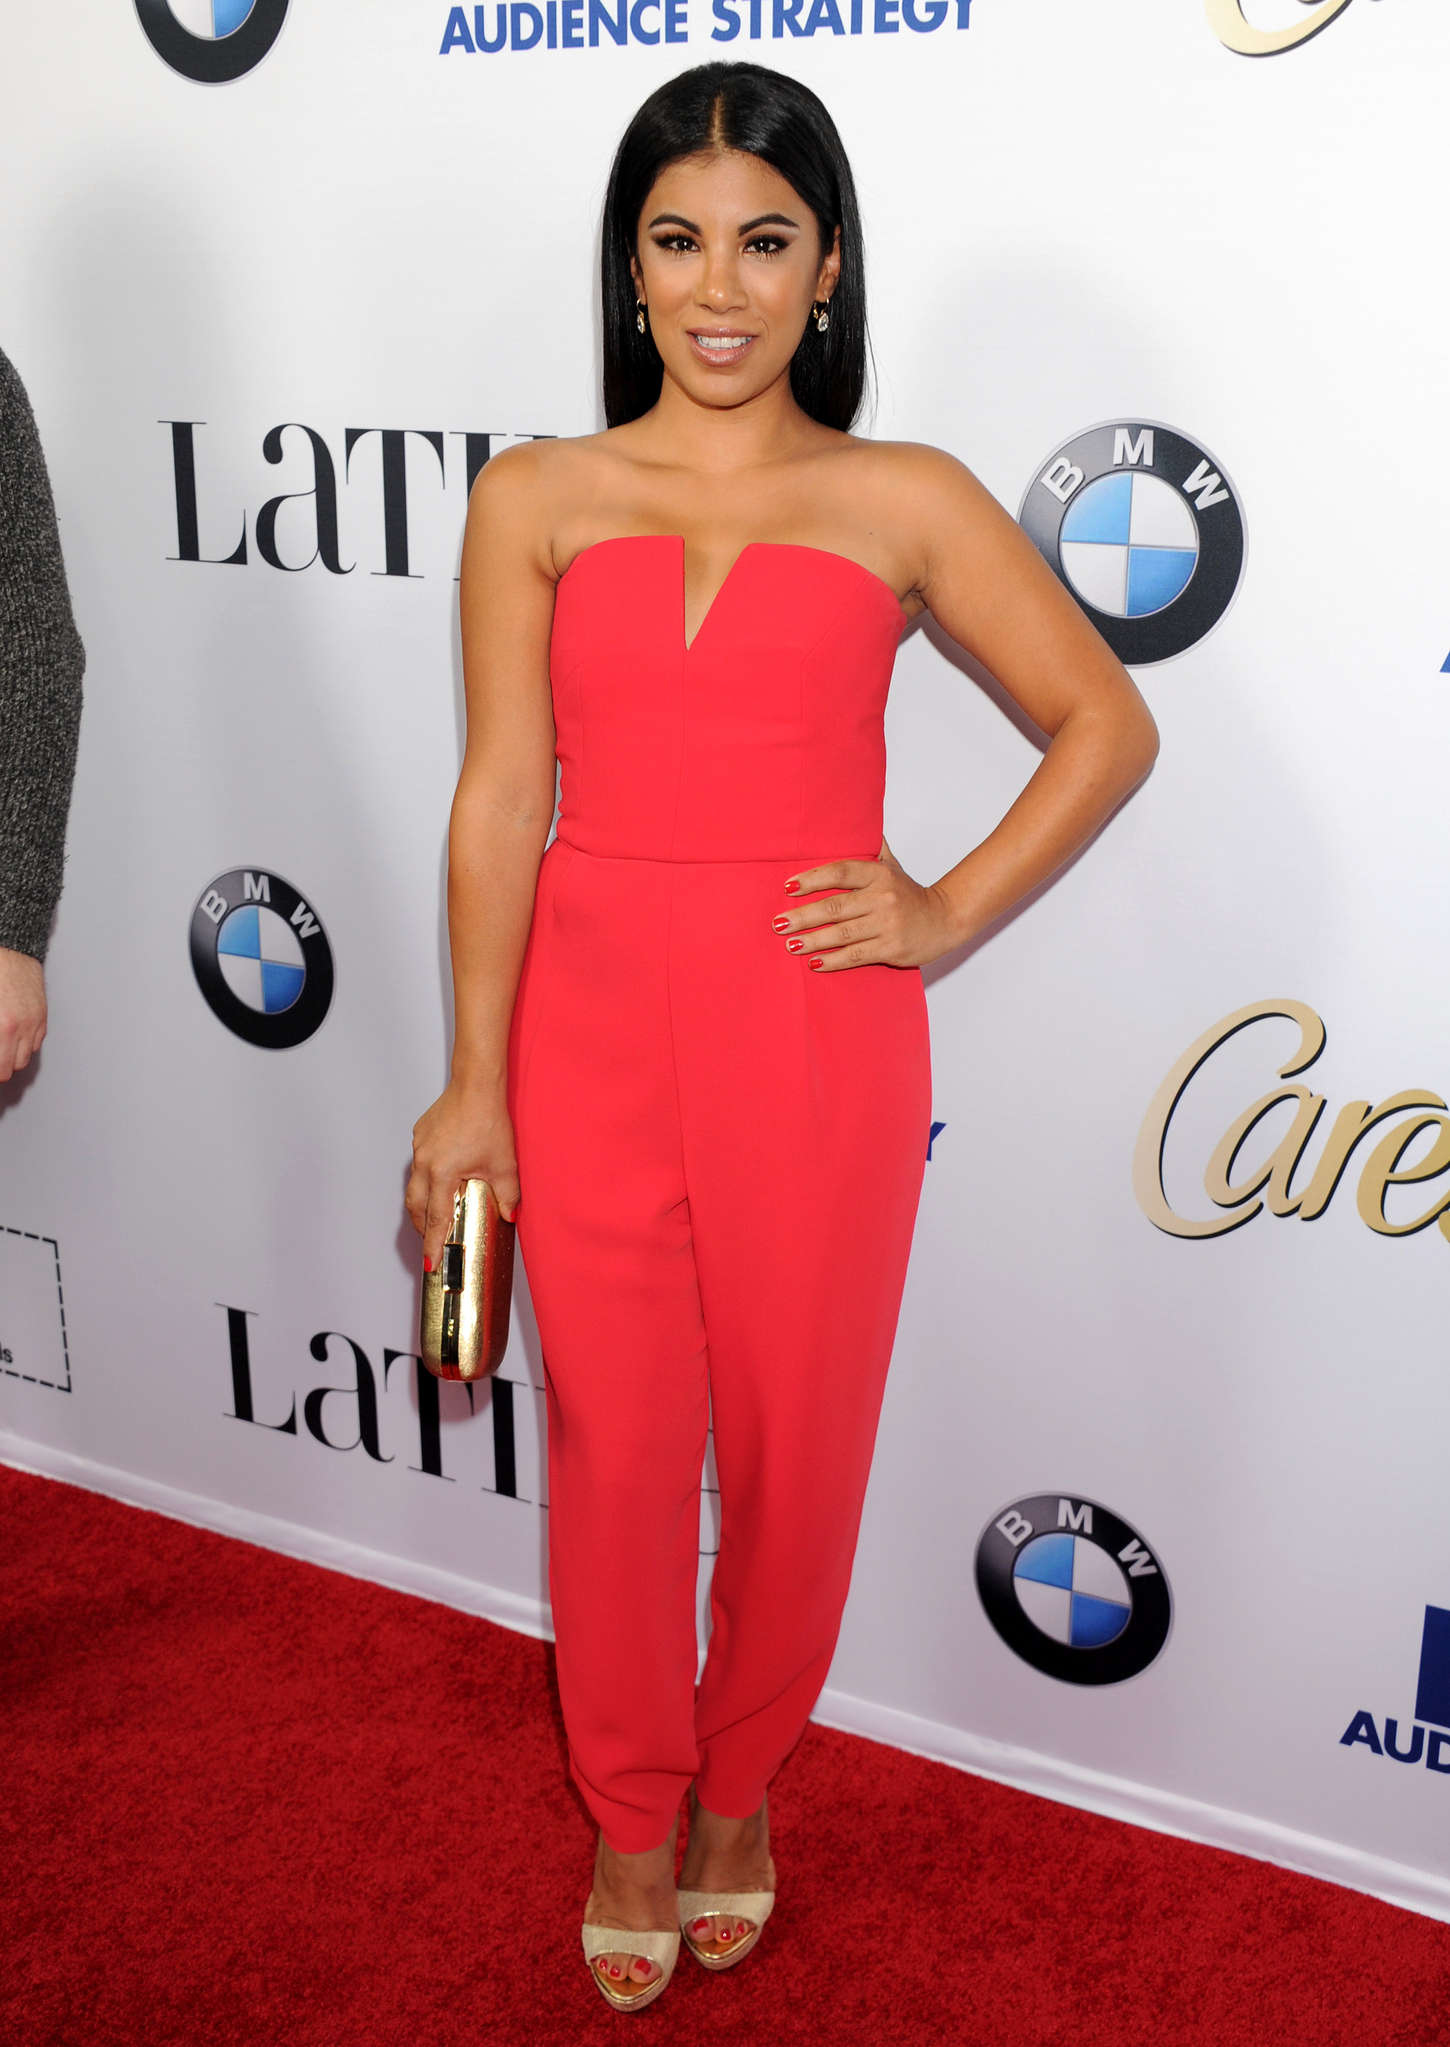 Chrissie Fit Latina Media Ventures Hosts Latina Hot List Party in West Hollywood